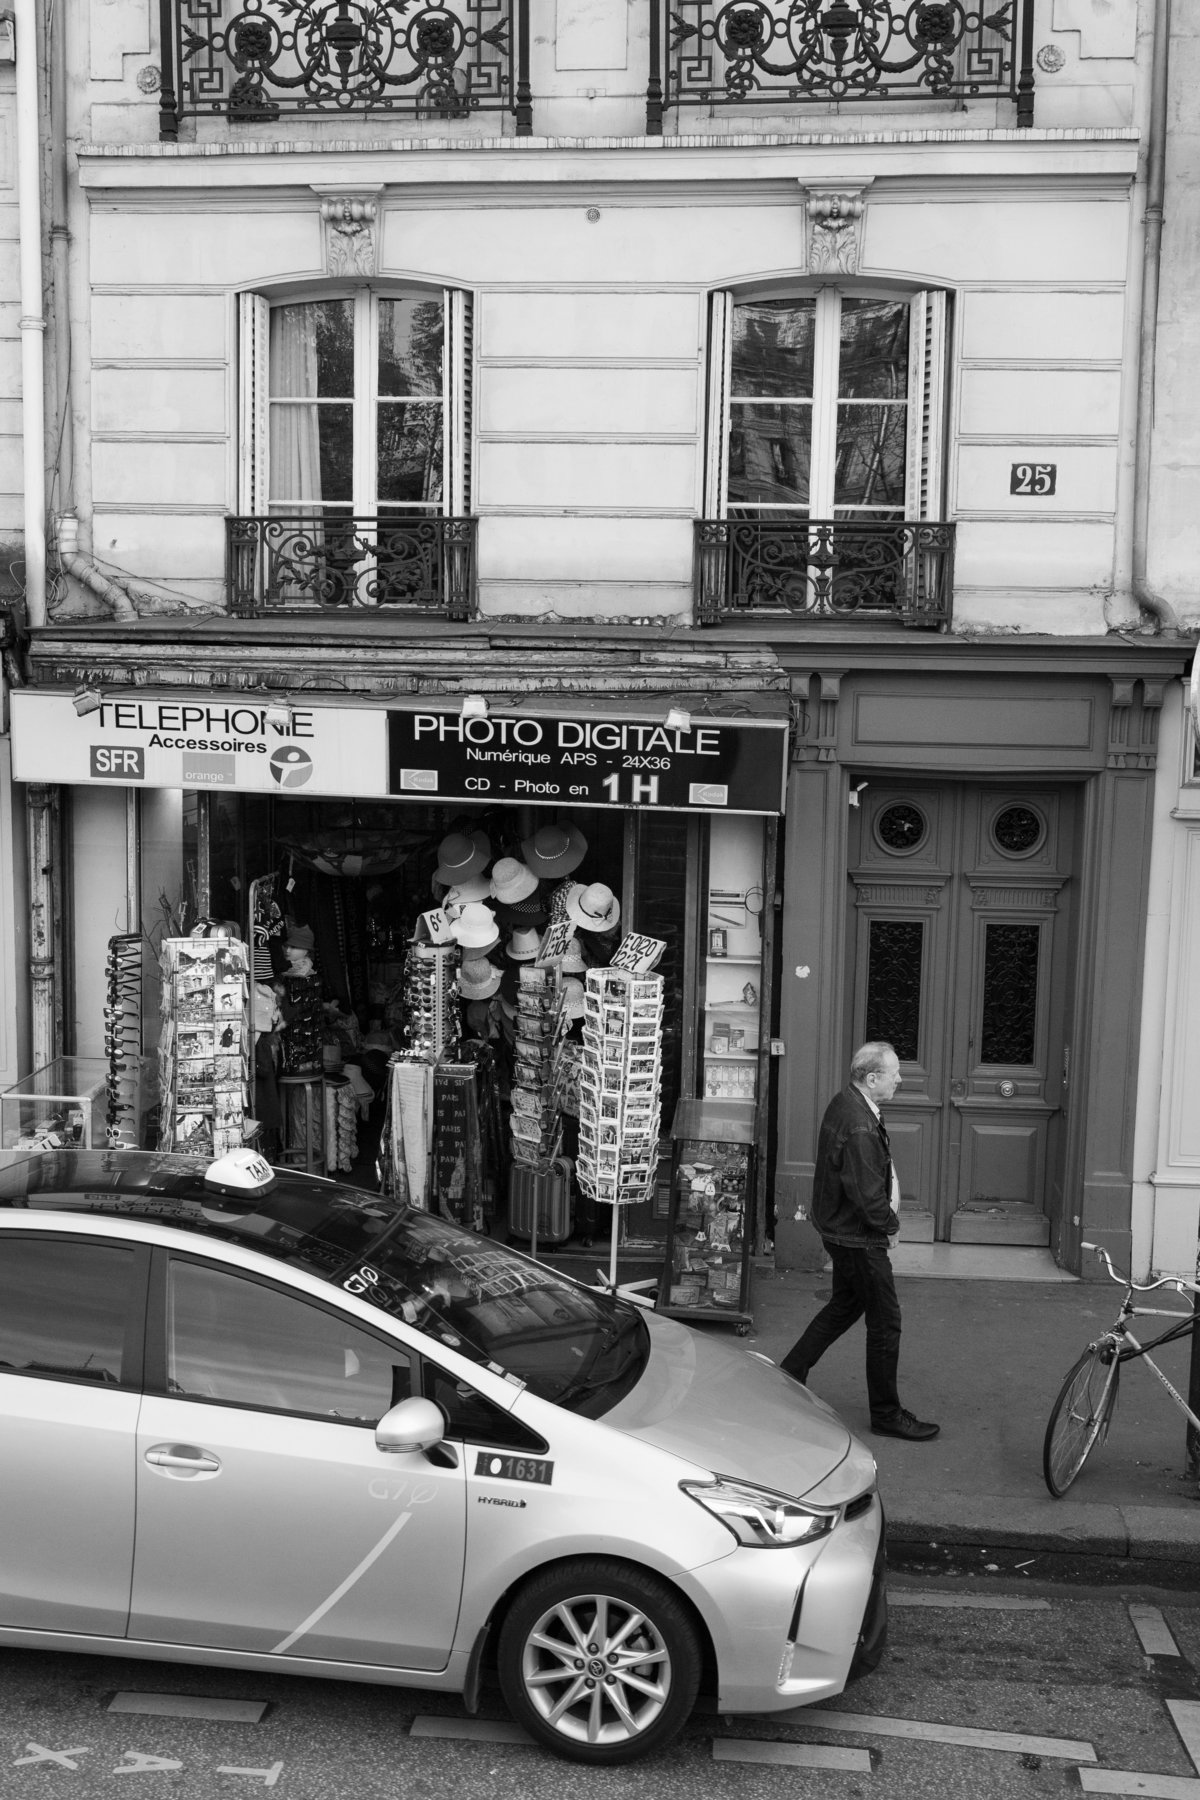 Streets of Paris BW 116